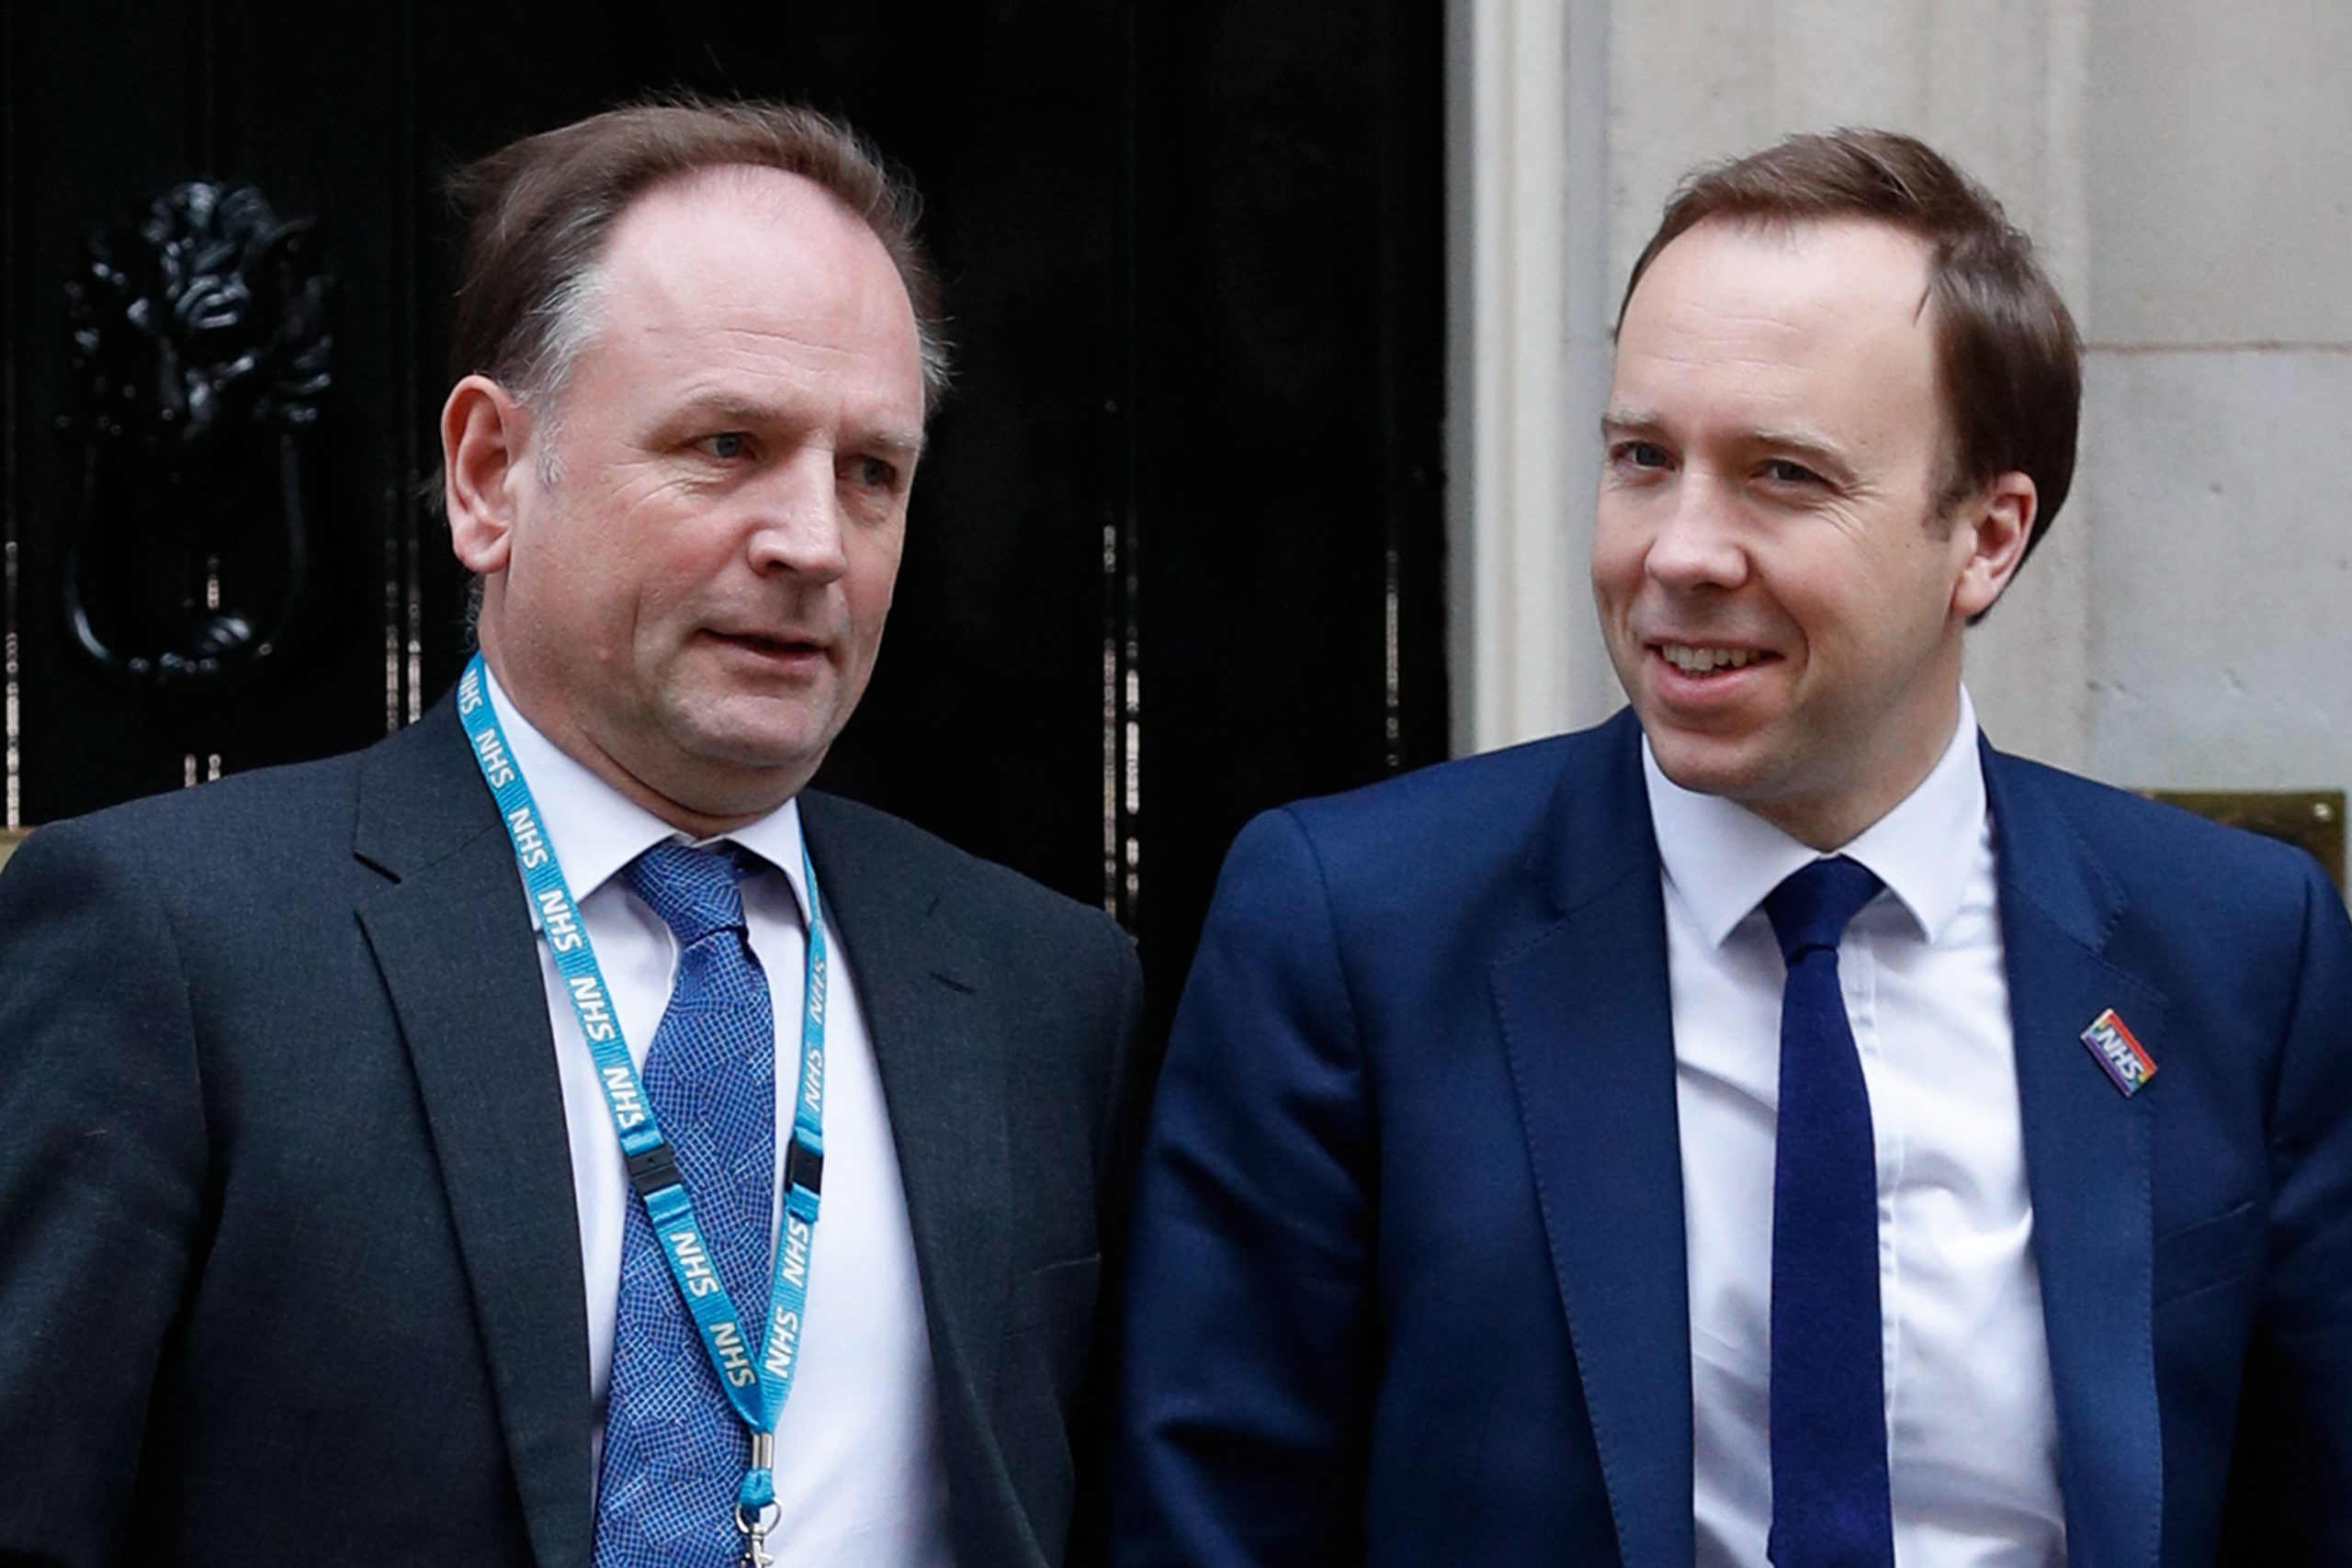 Simon Stevens will retire as NHS CEO in July